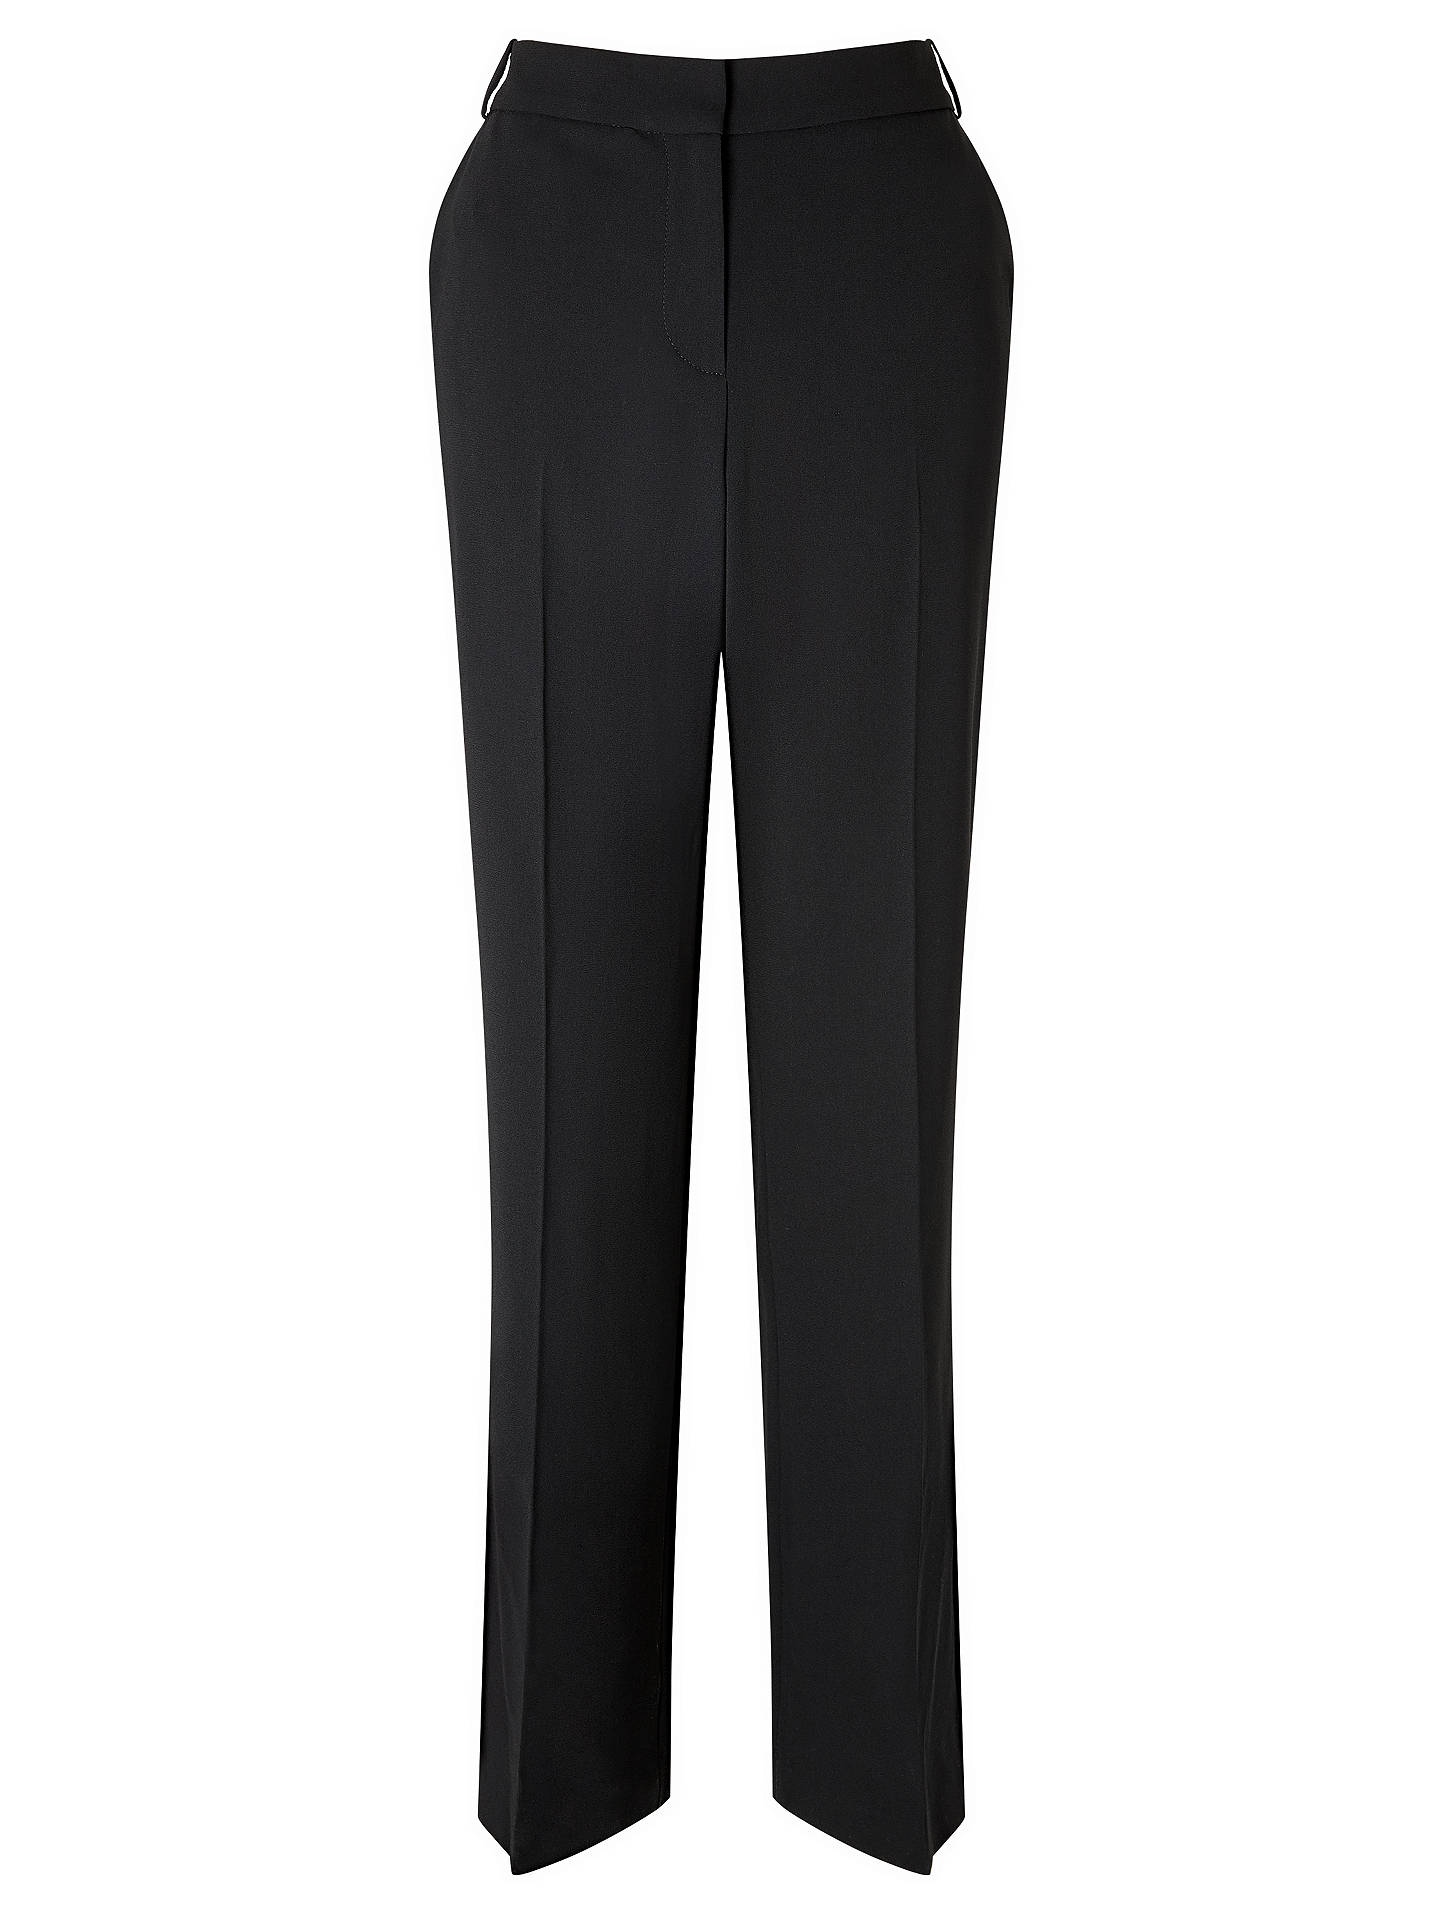 BuyJohn Lewis & Partners Eva Crepe Bootcut Trousers, Black, 8 Online at johnlewis.com